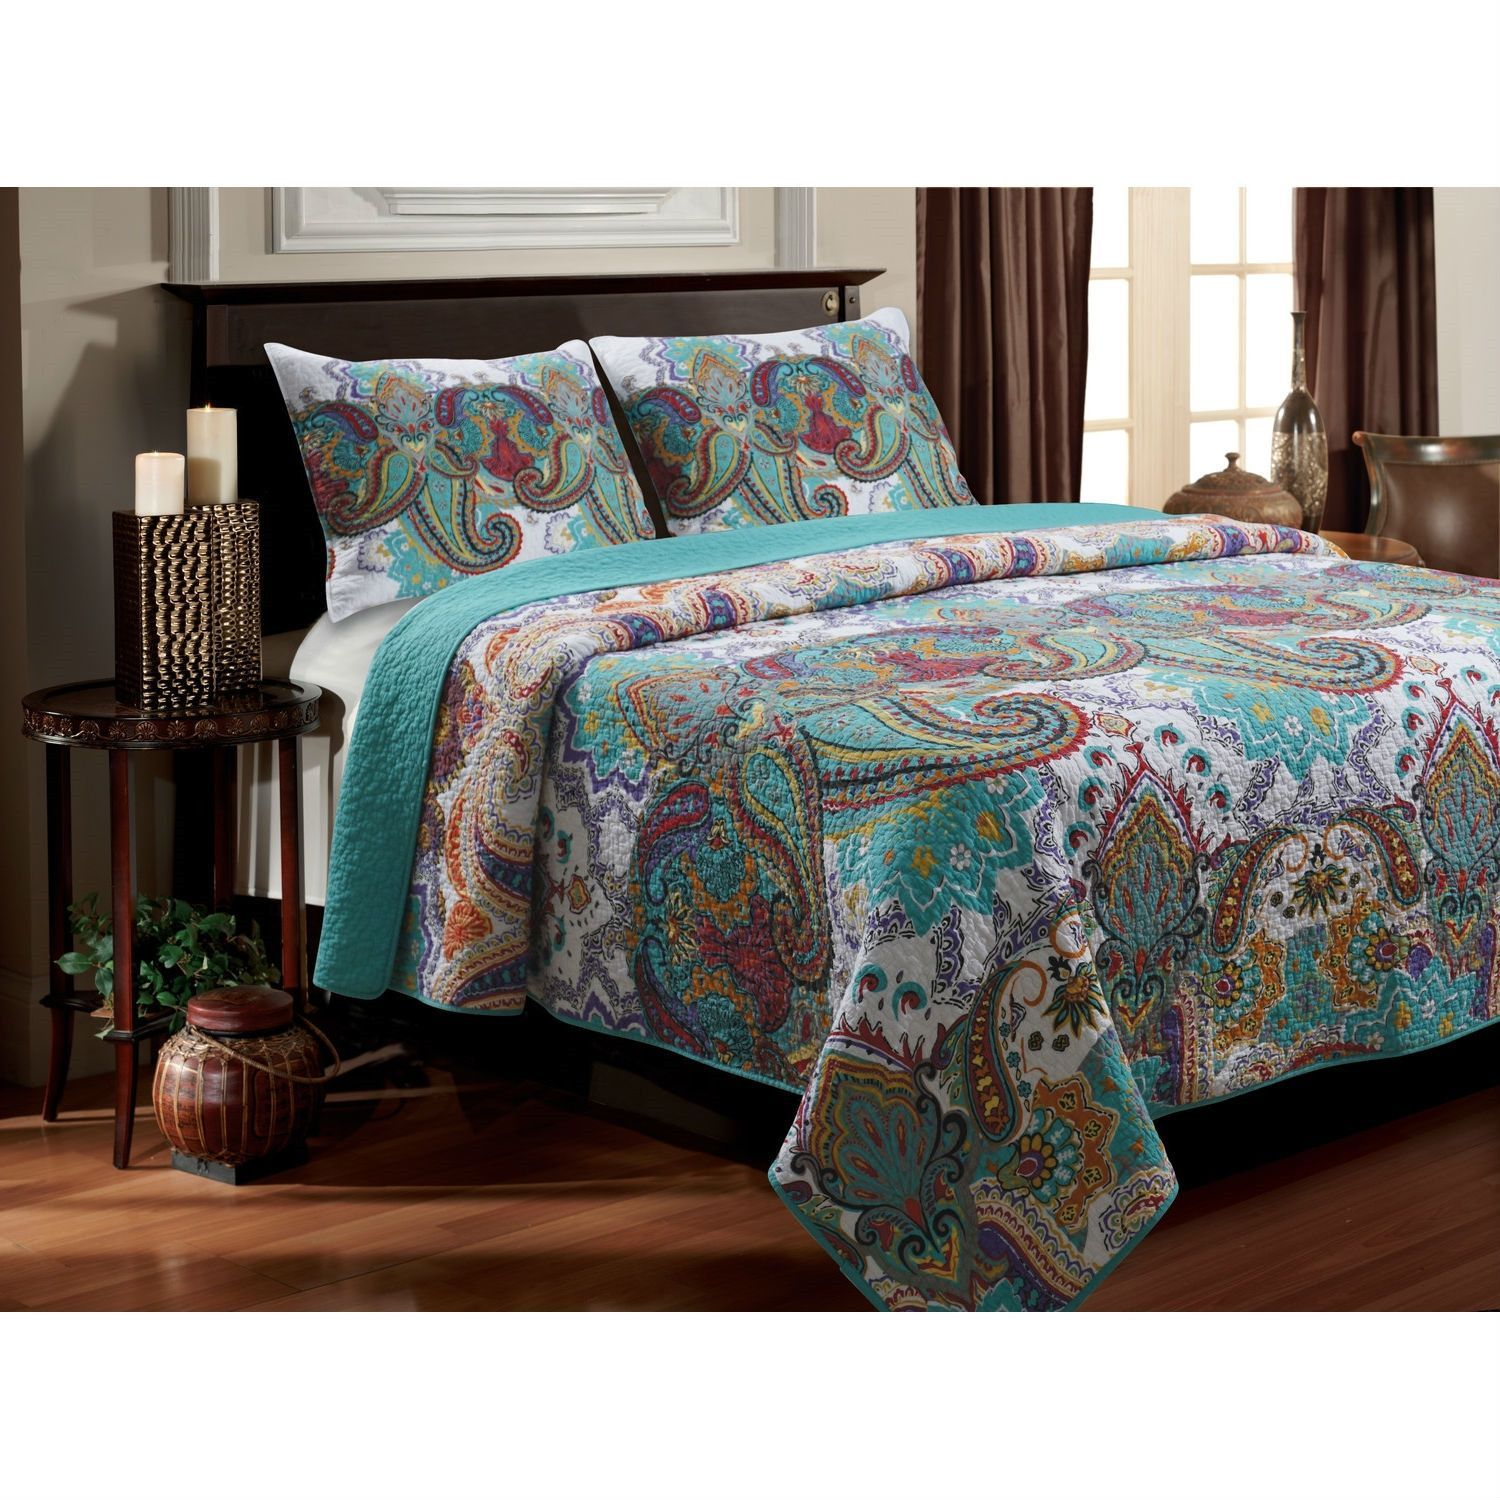 printed paisley sale southshore quilts classic on linens today melody lightweight bath shipping by set pure bedding quilt piece overstock product free fine